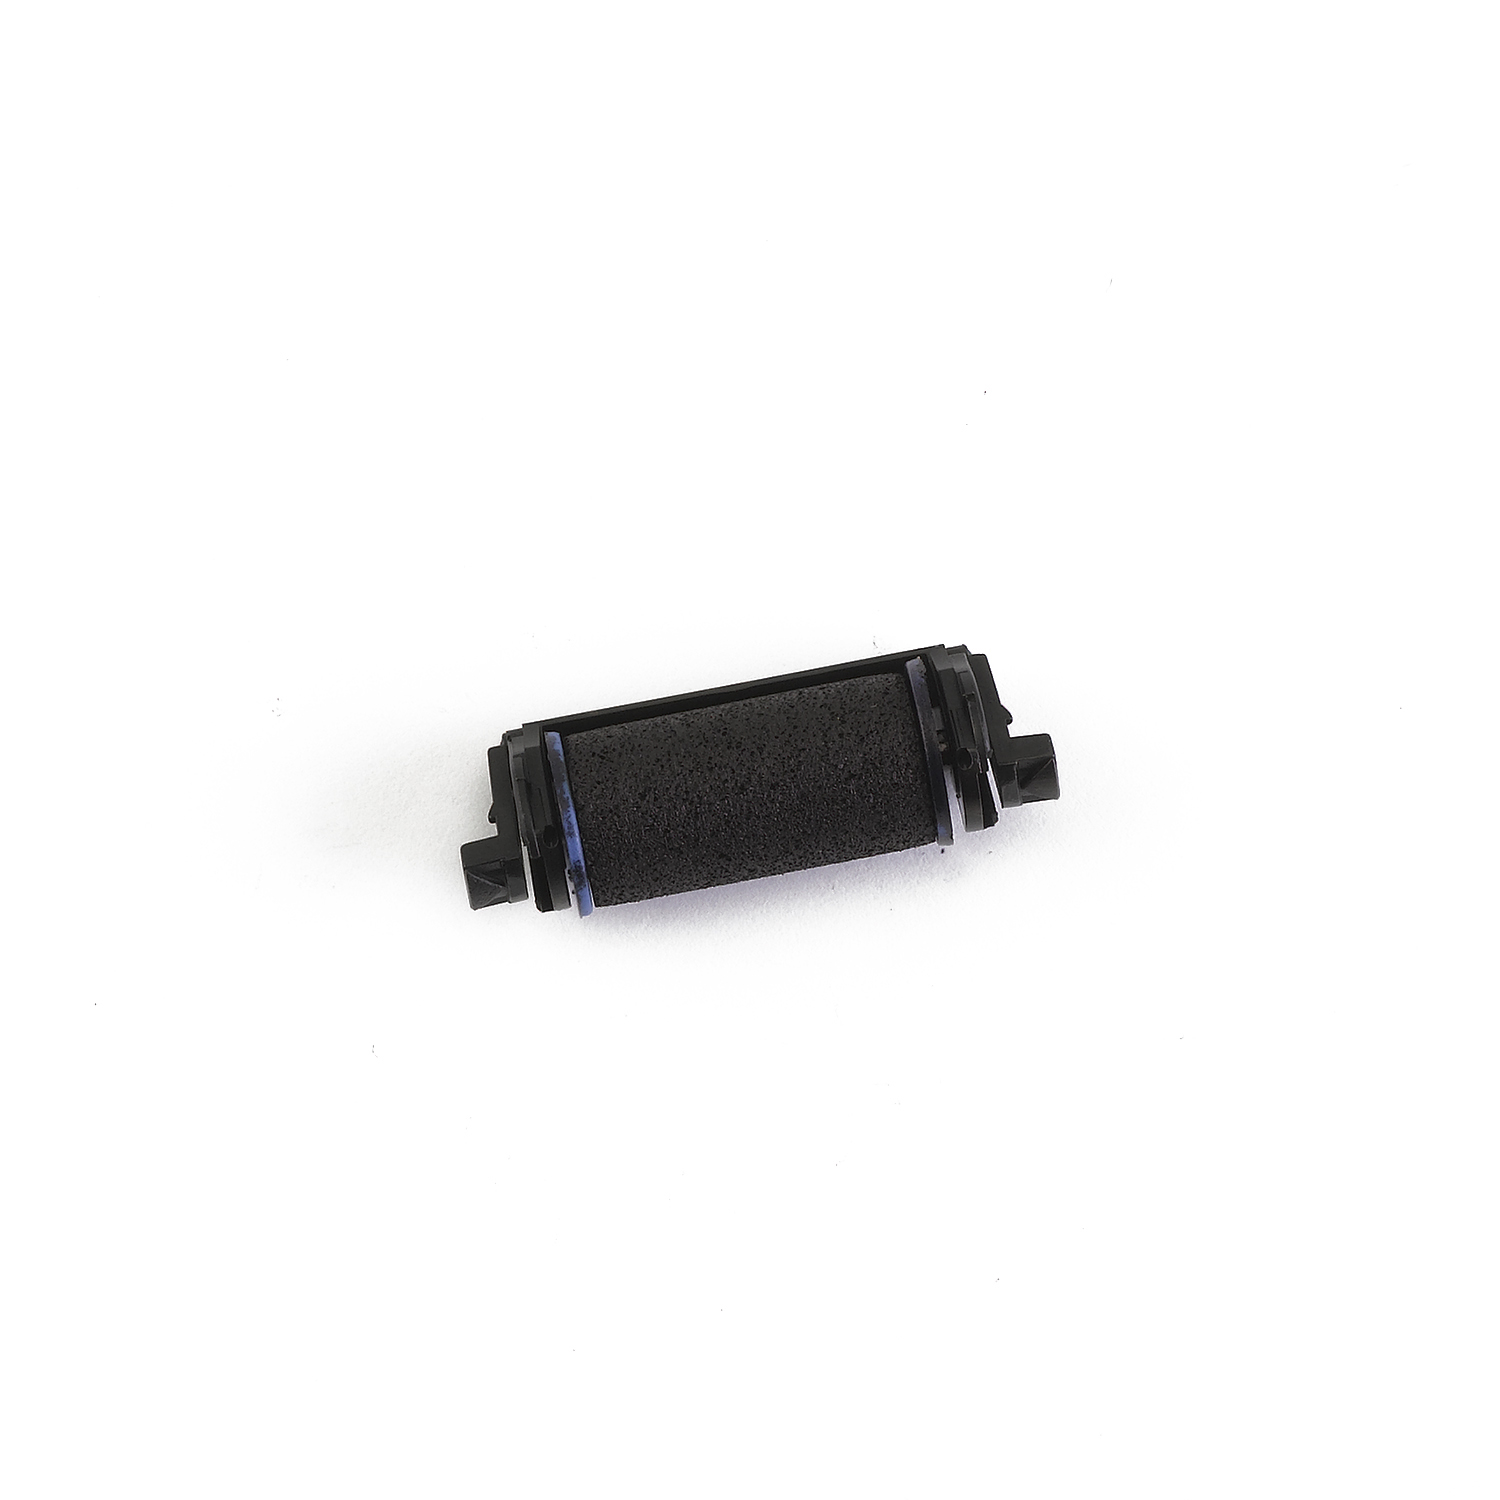 Replacement Ink Roller (2 Pack)